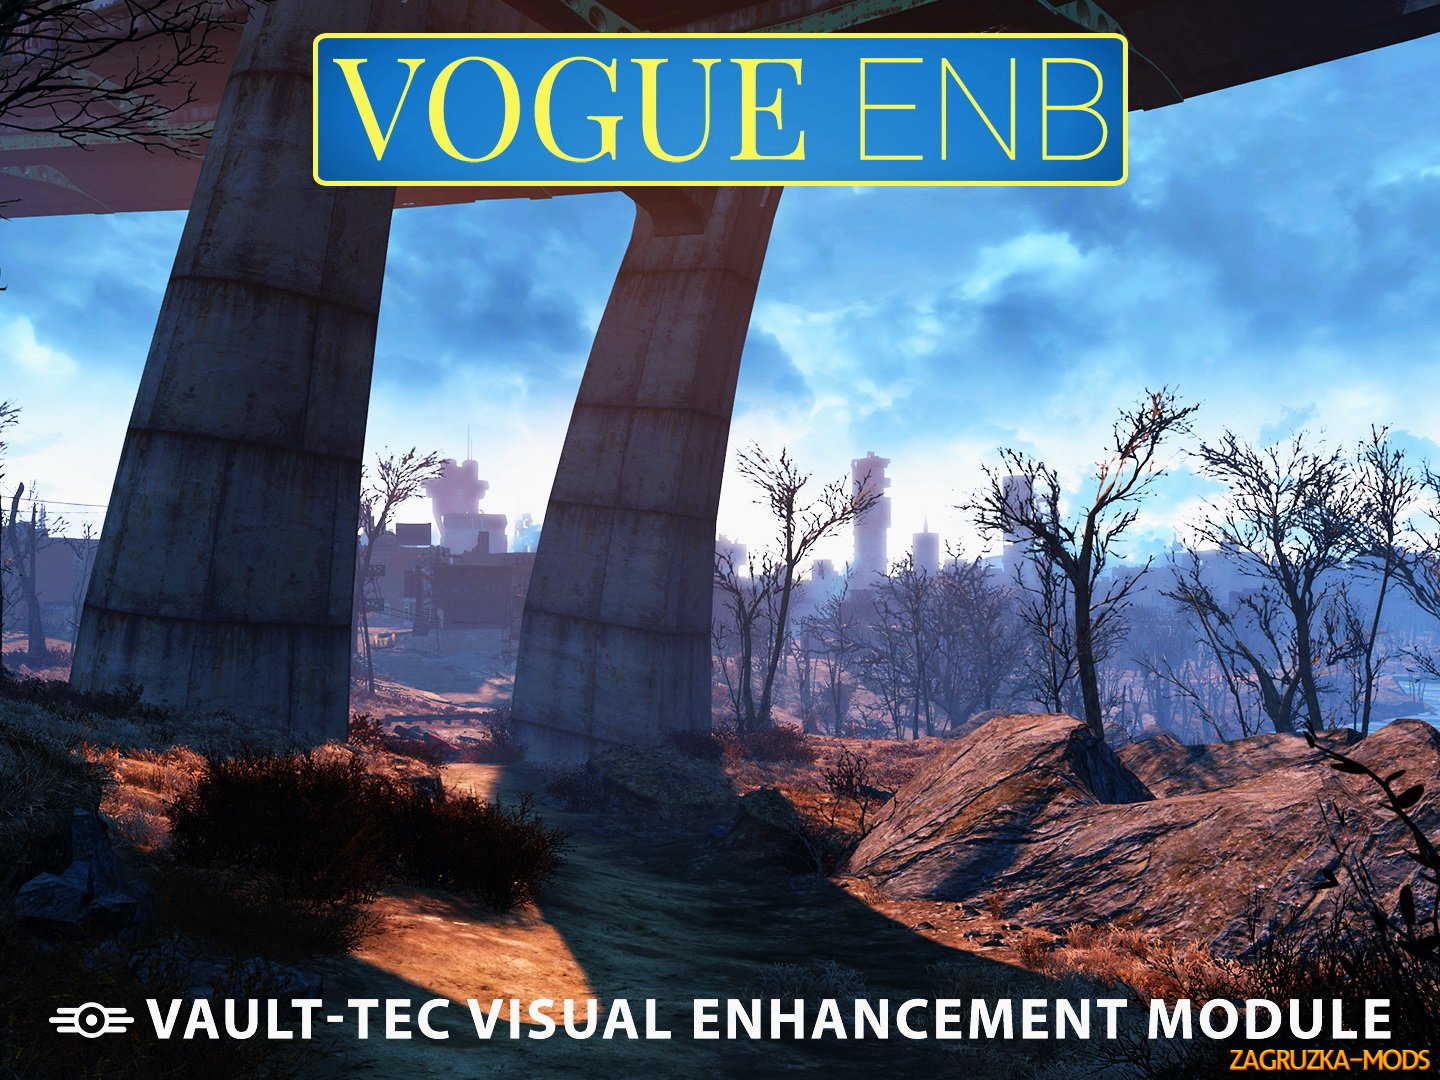 VOGUE ENB - Realism v1.0 for Fallout 4